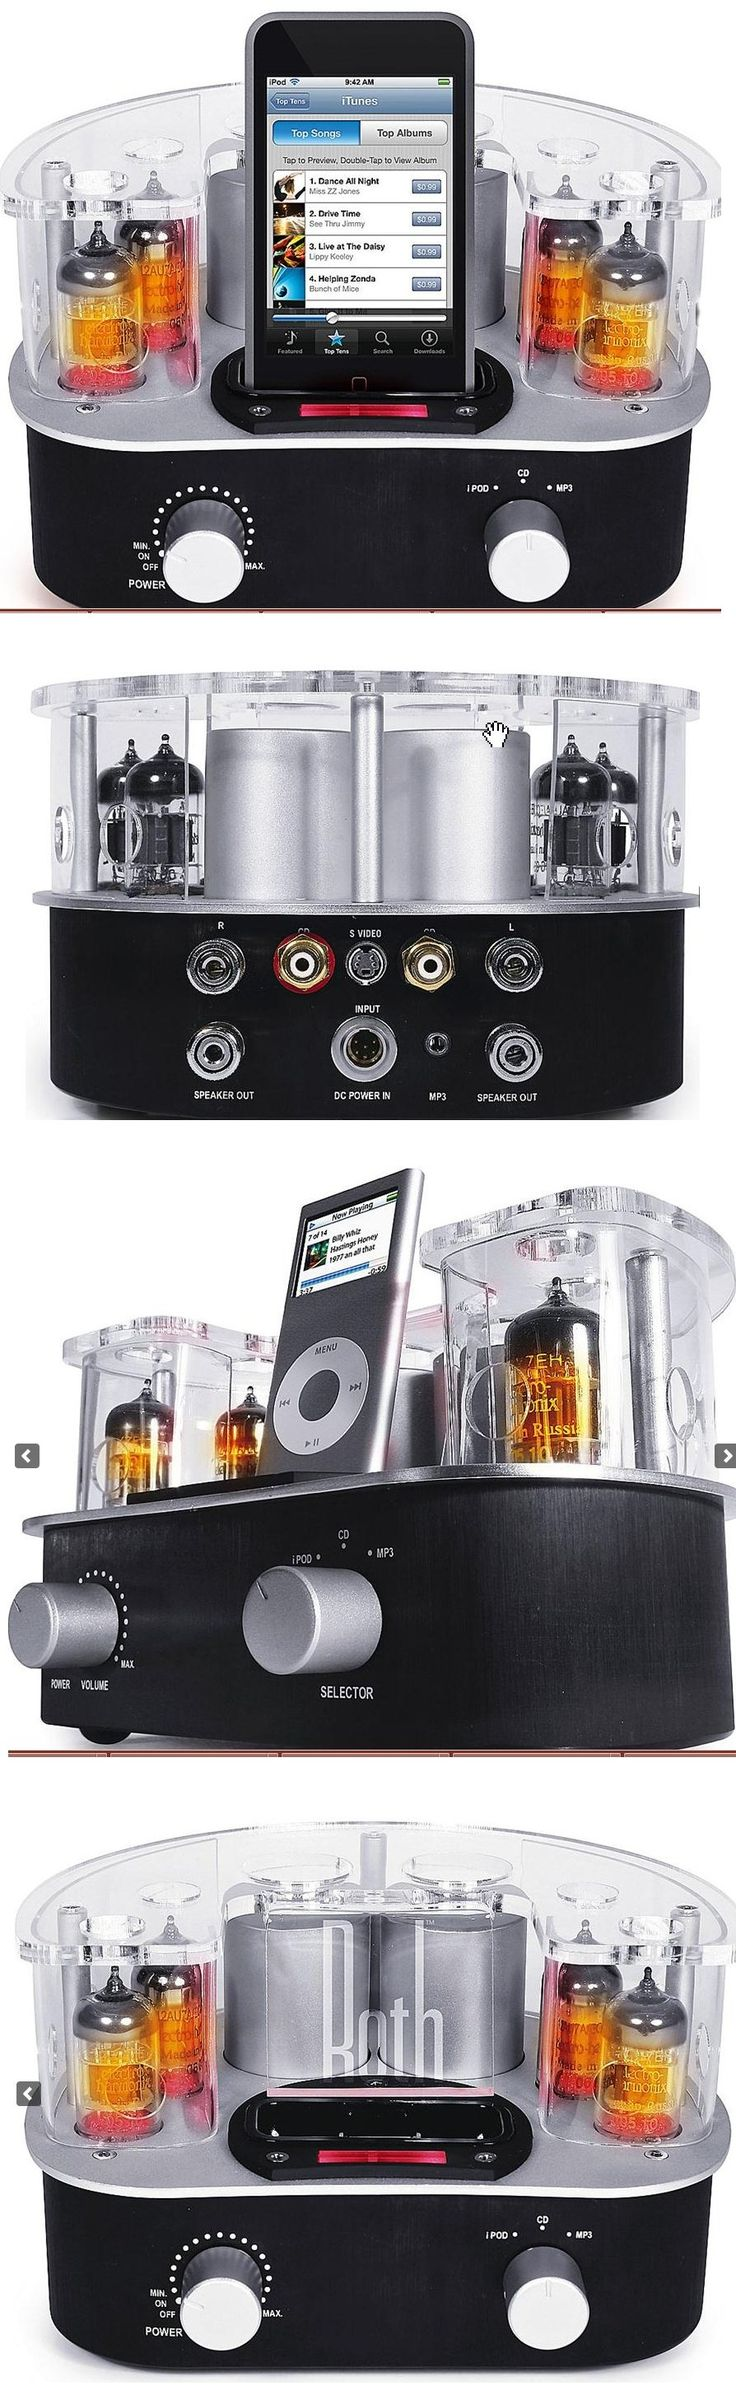 "Roth Audio MC4 Music Cocoon Hybrid tube amplifier with built-in iPod® dock 13 watts x 2 channels into 8 ohms (20-30,000 Hz) at 0.5% THD hybrid vacuum tube/solid-state design vacuum tube preamp stage (uses two 12AU7 and two 12AX7 tubes) MOSFET solid state power amp signal-to-noise ratio: 90dB one pair of gold-plated RCA audio inputs one stereo minijack audio input S-video output wireless remote heavy-duty binding-post speaker connectors 7-3/8""W x 4-9/16""H x 7-9/16""D $299"